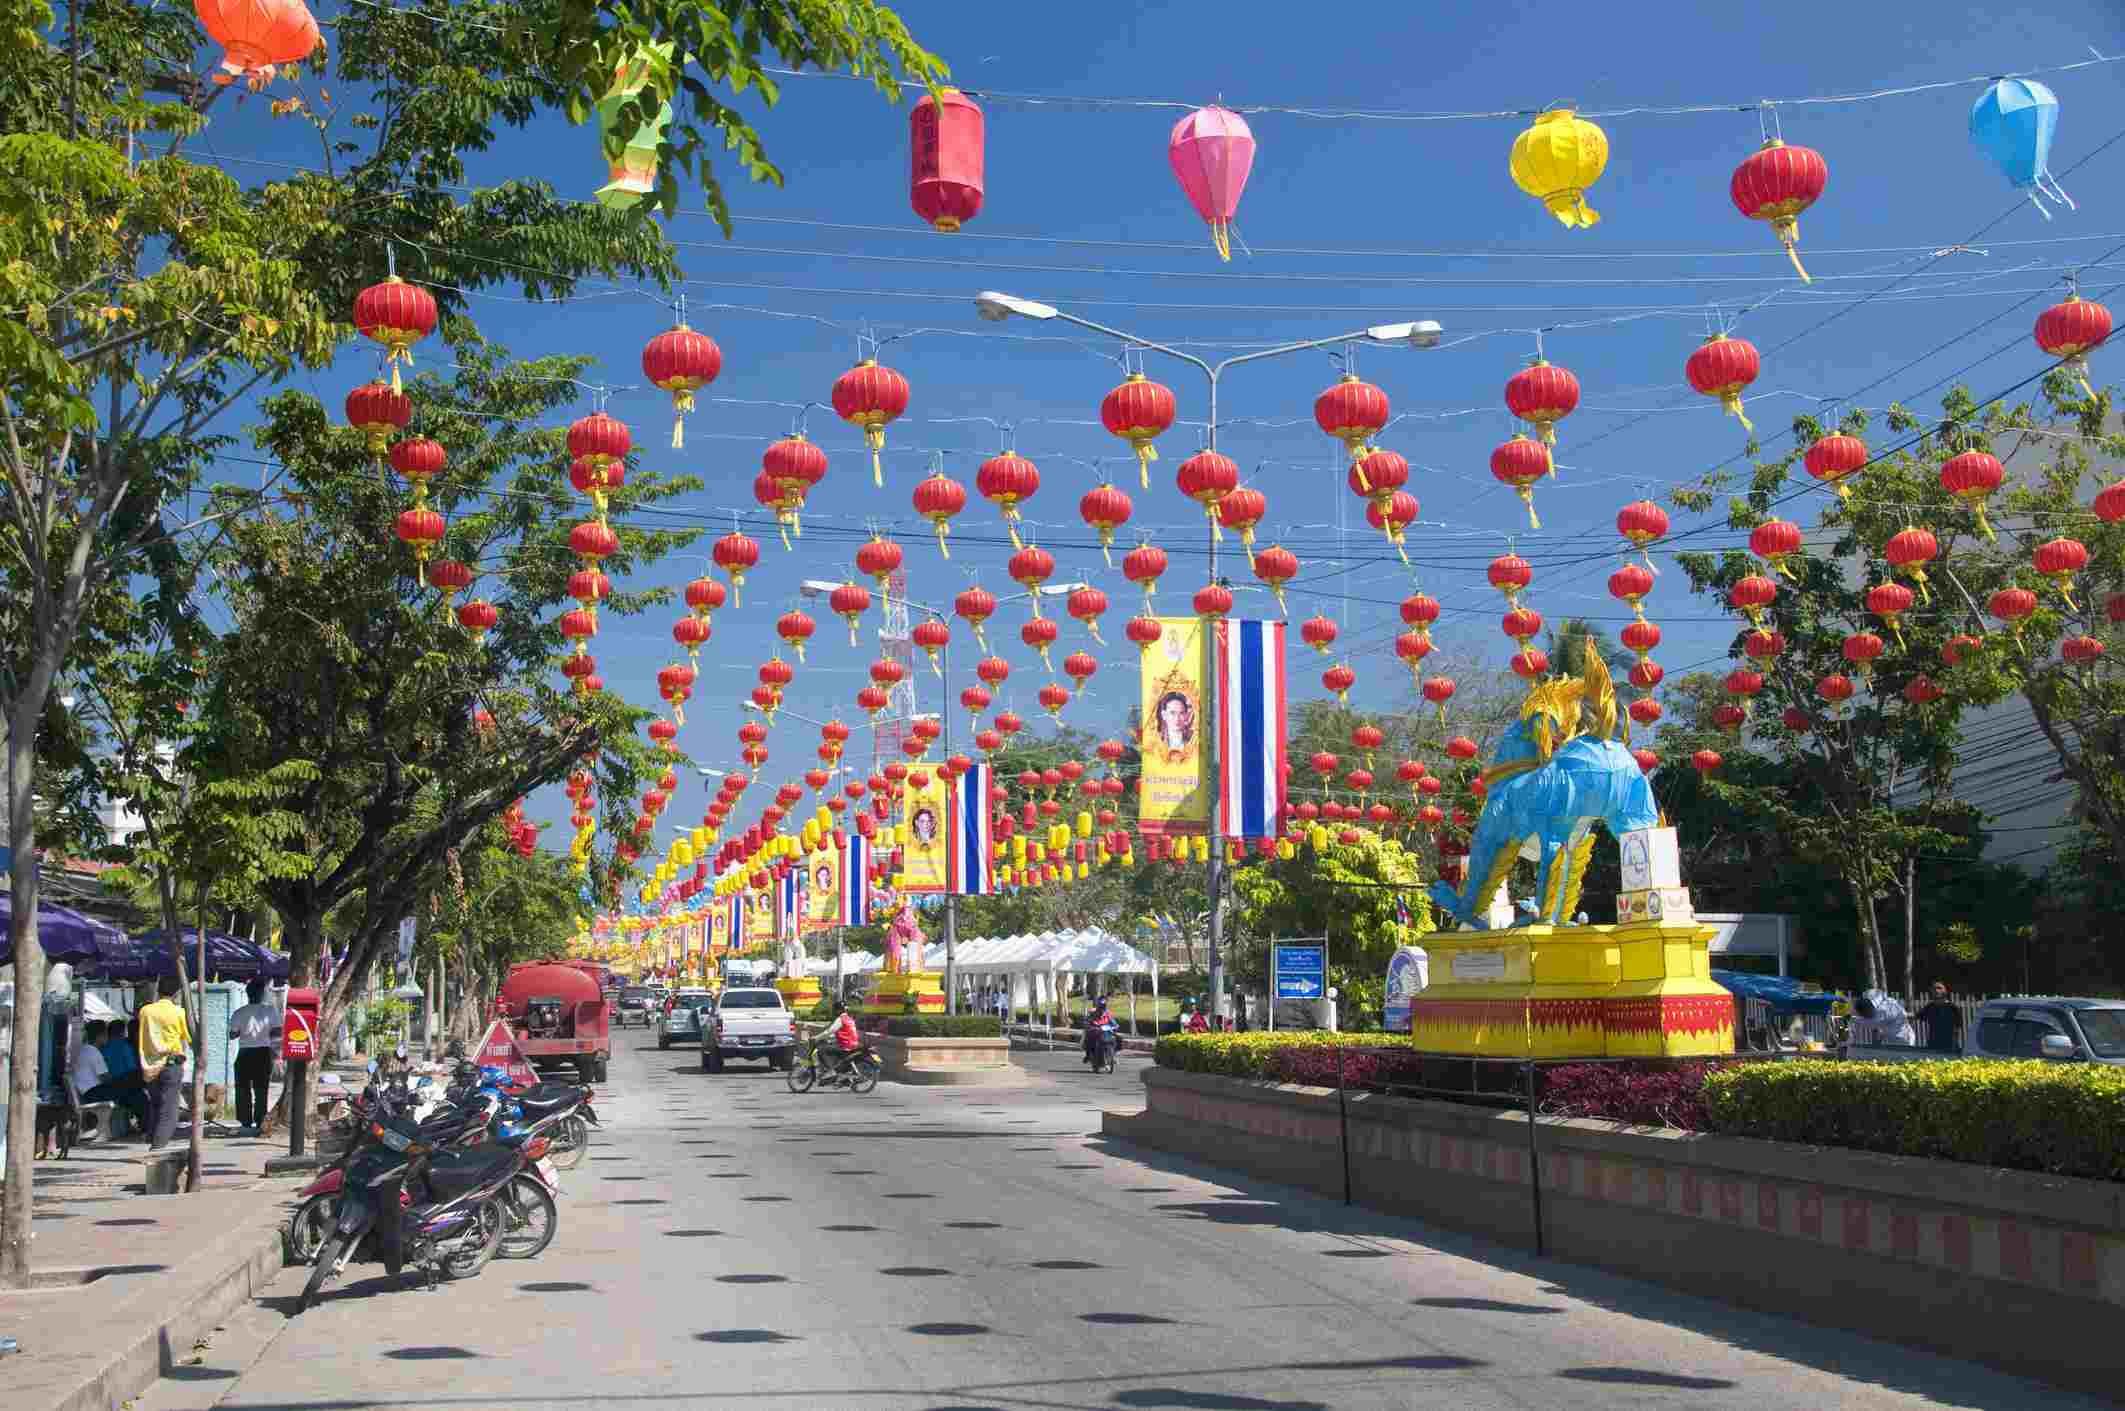 Thailand, Hua Hin, street decorated for the king's birthday celebrations